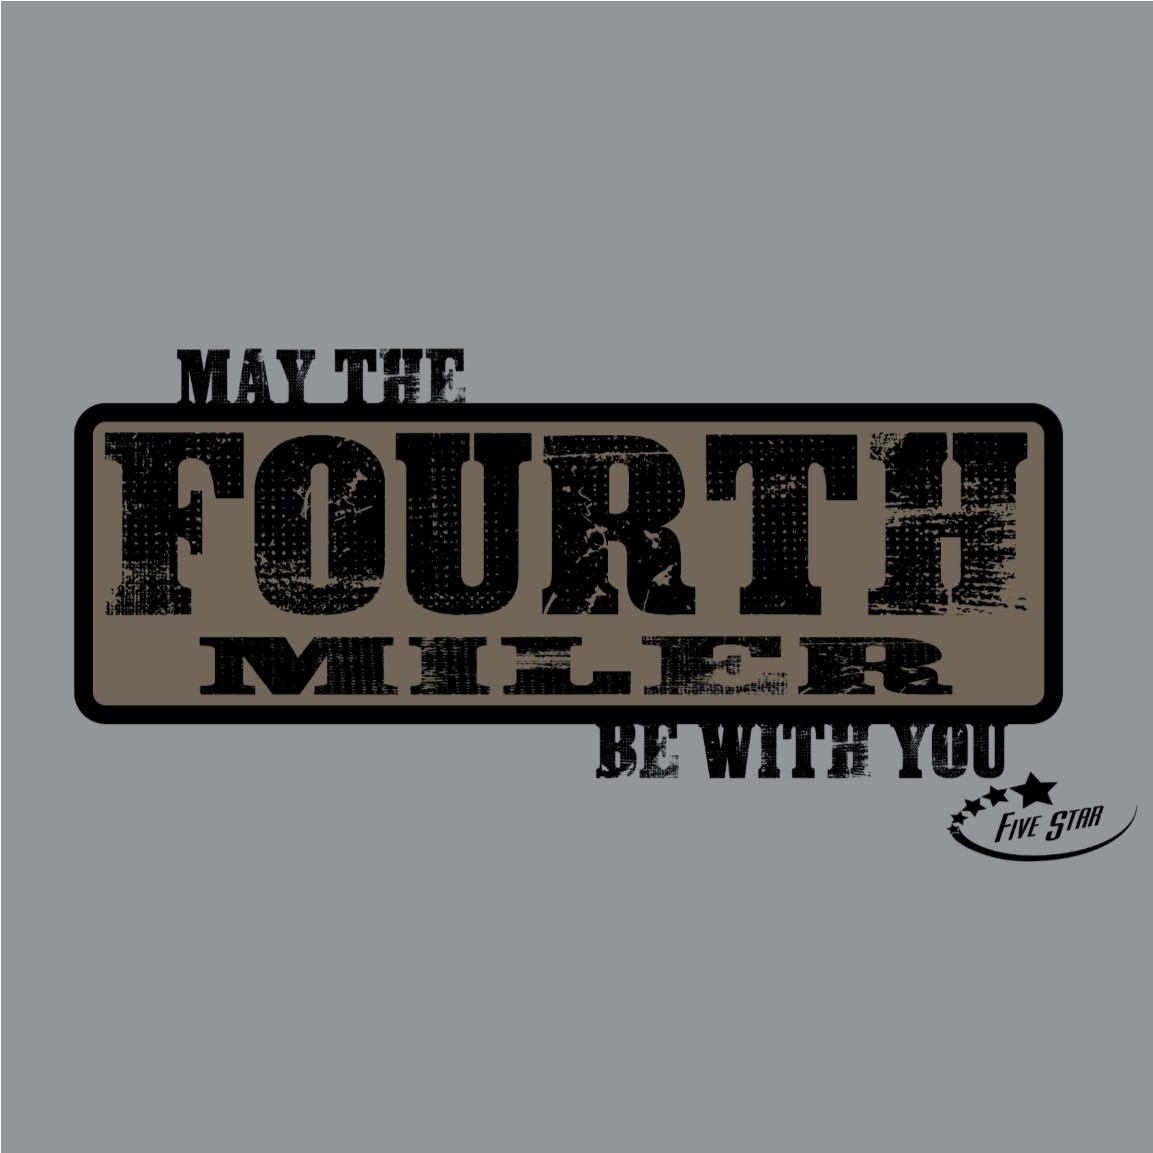 May The 4th Be With You Logo: May The 4th Miler Be With You — Race Roster